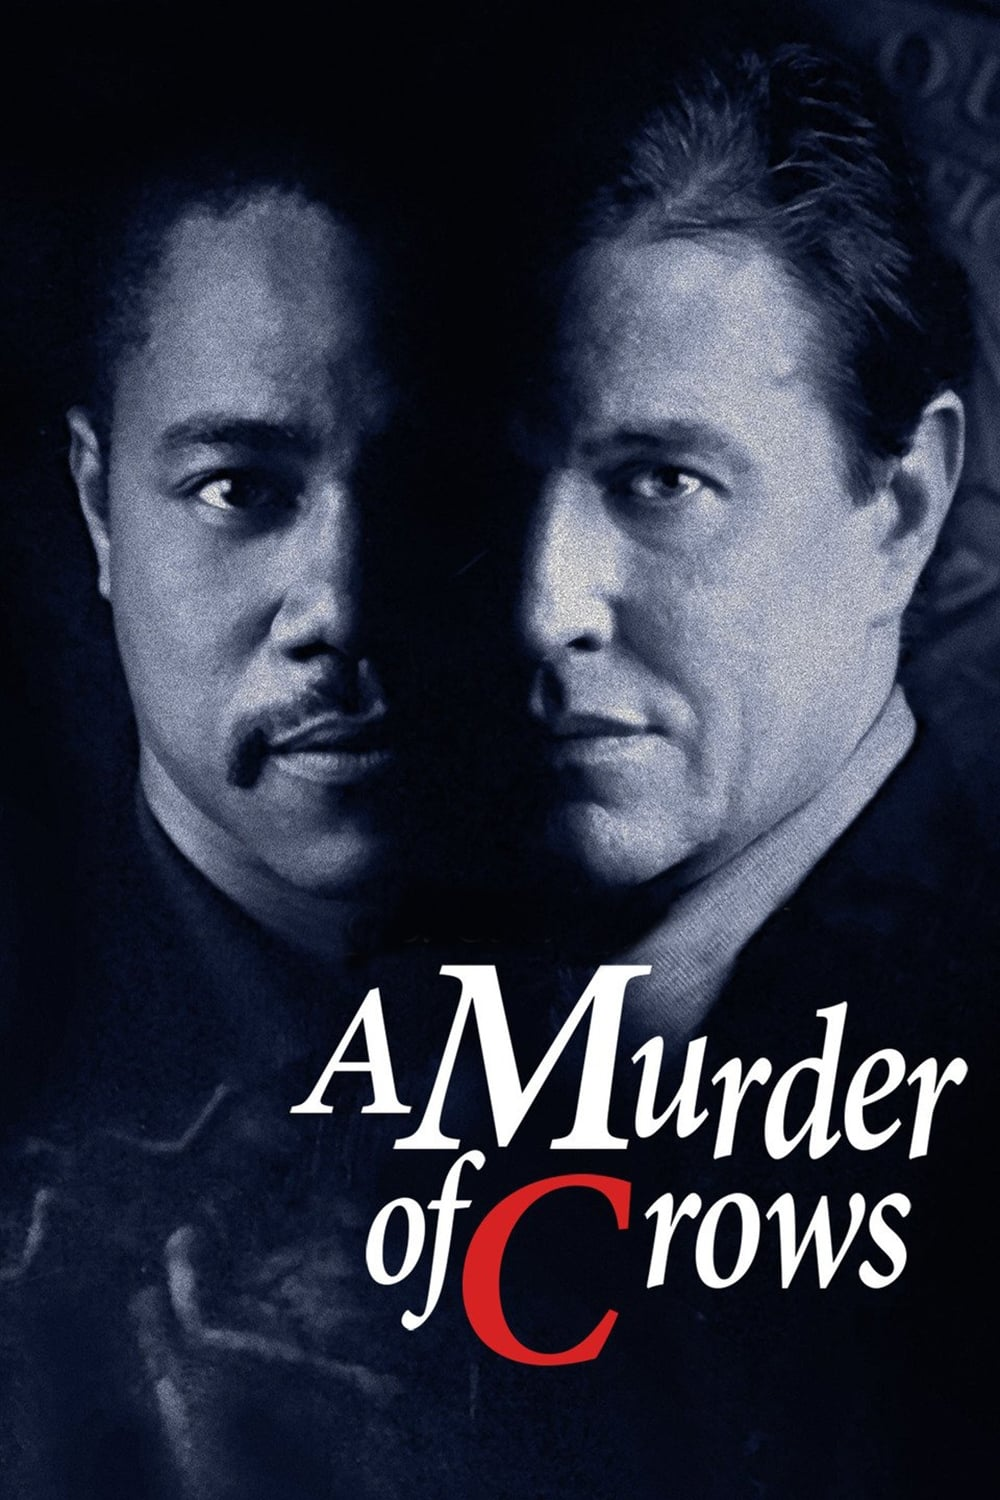 A Murder of Crows (1999)